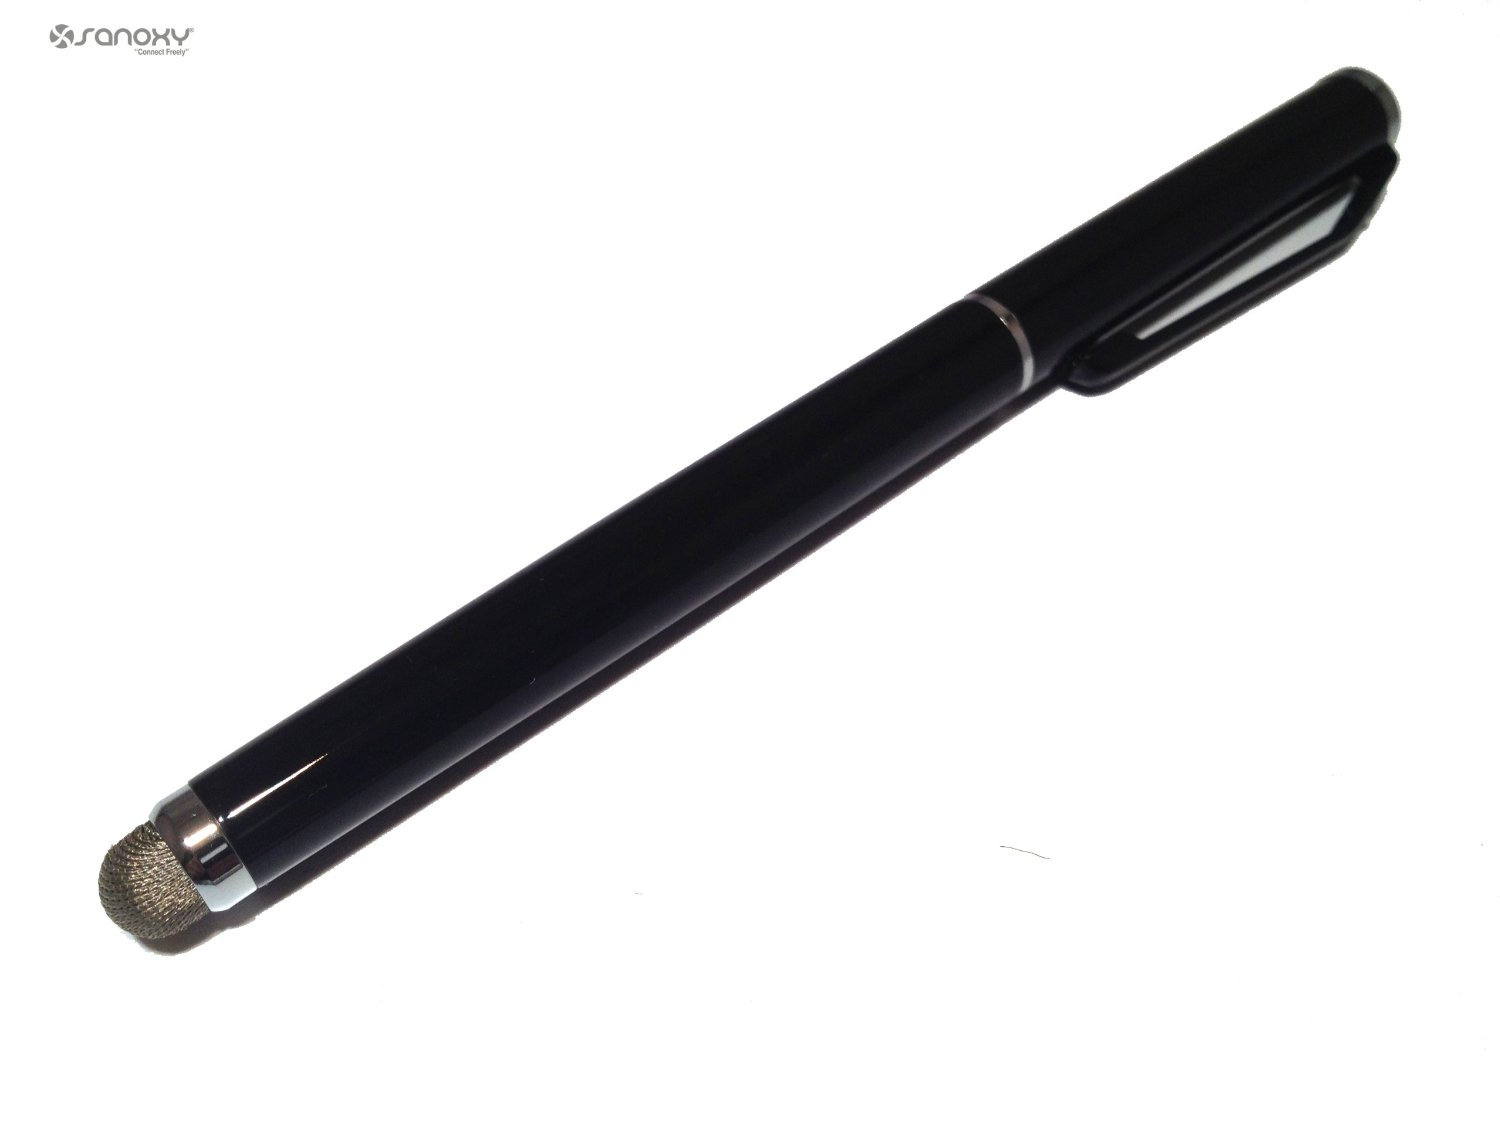 Sanoxy Elegant Conductive Microfiber Fabric Touch Stylus Ink Pen Combo For Htc Ipad Dual